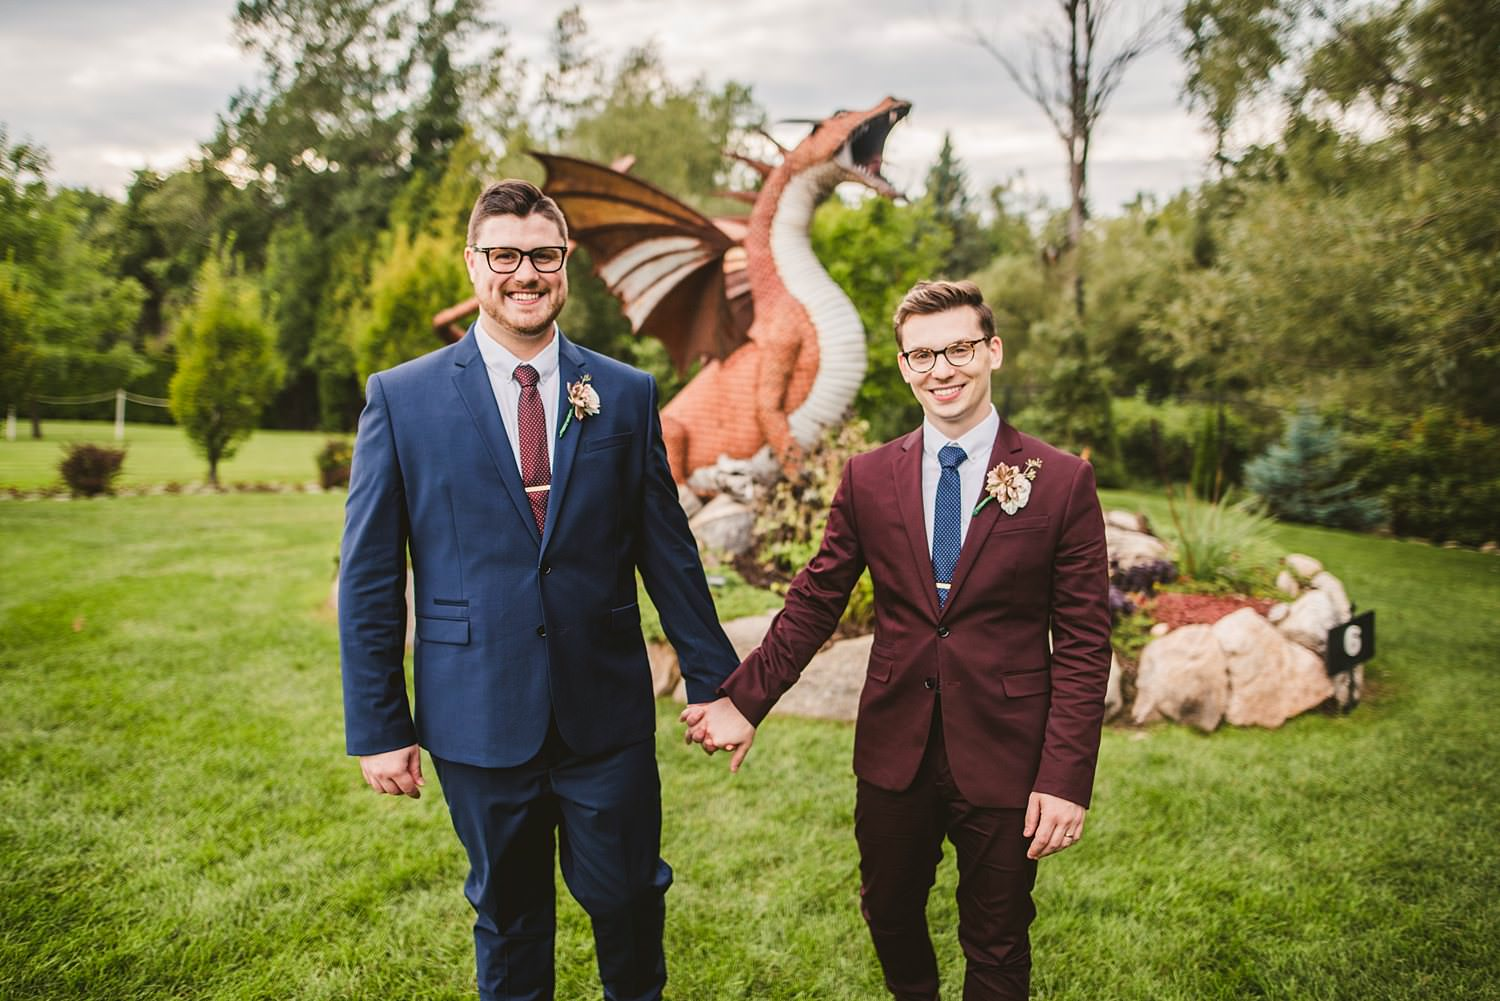 Castle Farms Northern Michigan LGBT Gay Wedding Photographer 63.jpg